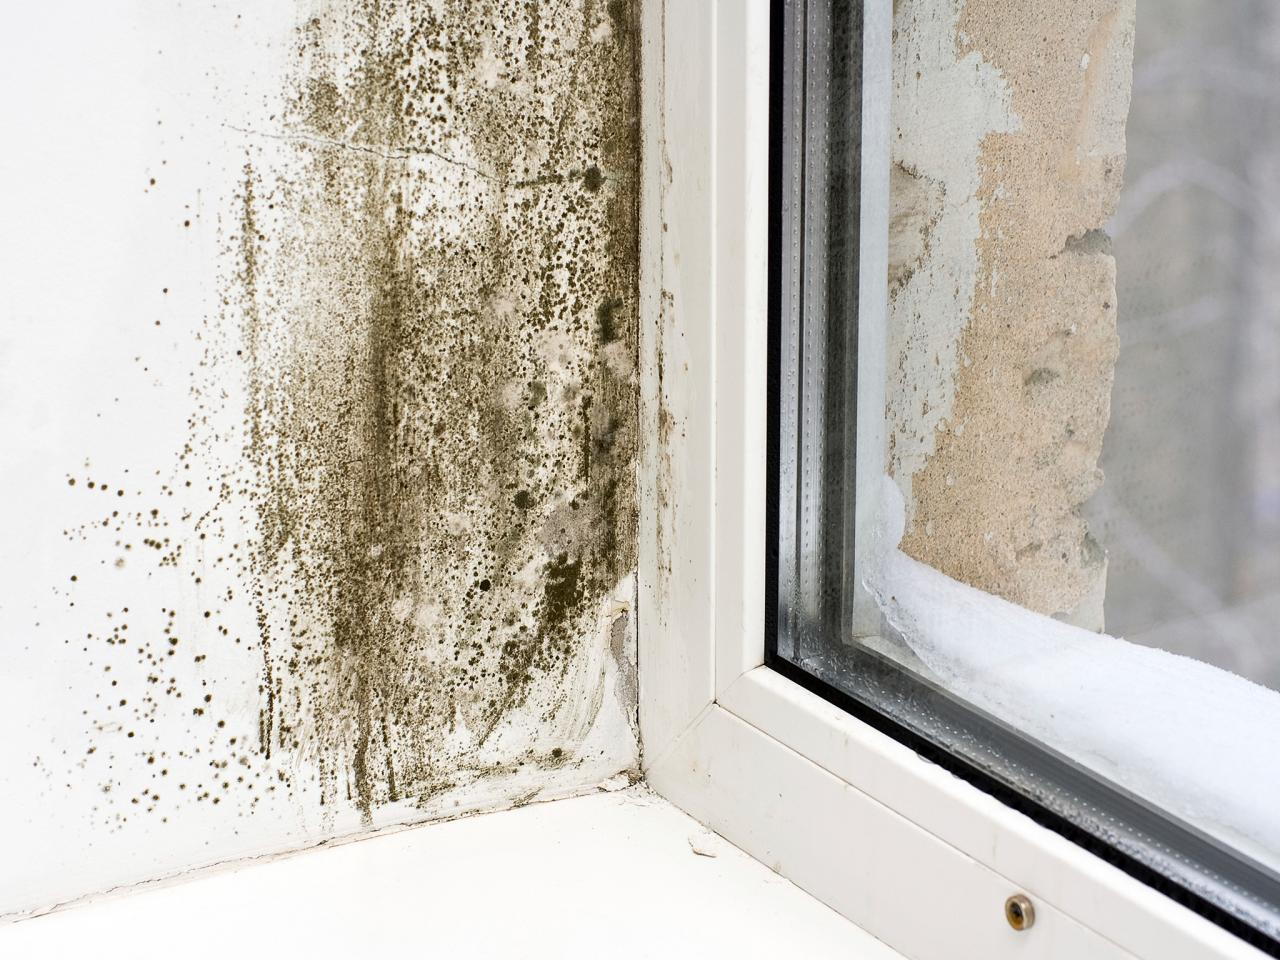 How to get rid of mold without using toxic cleaning products